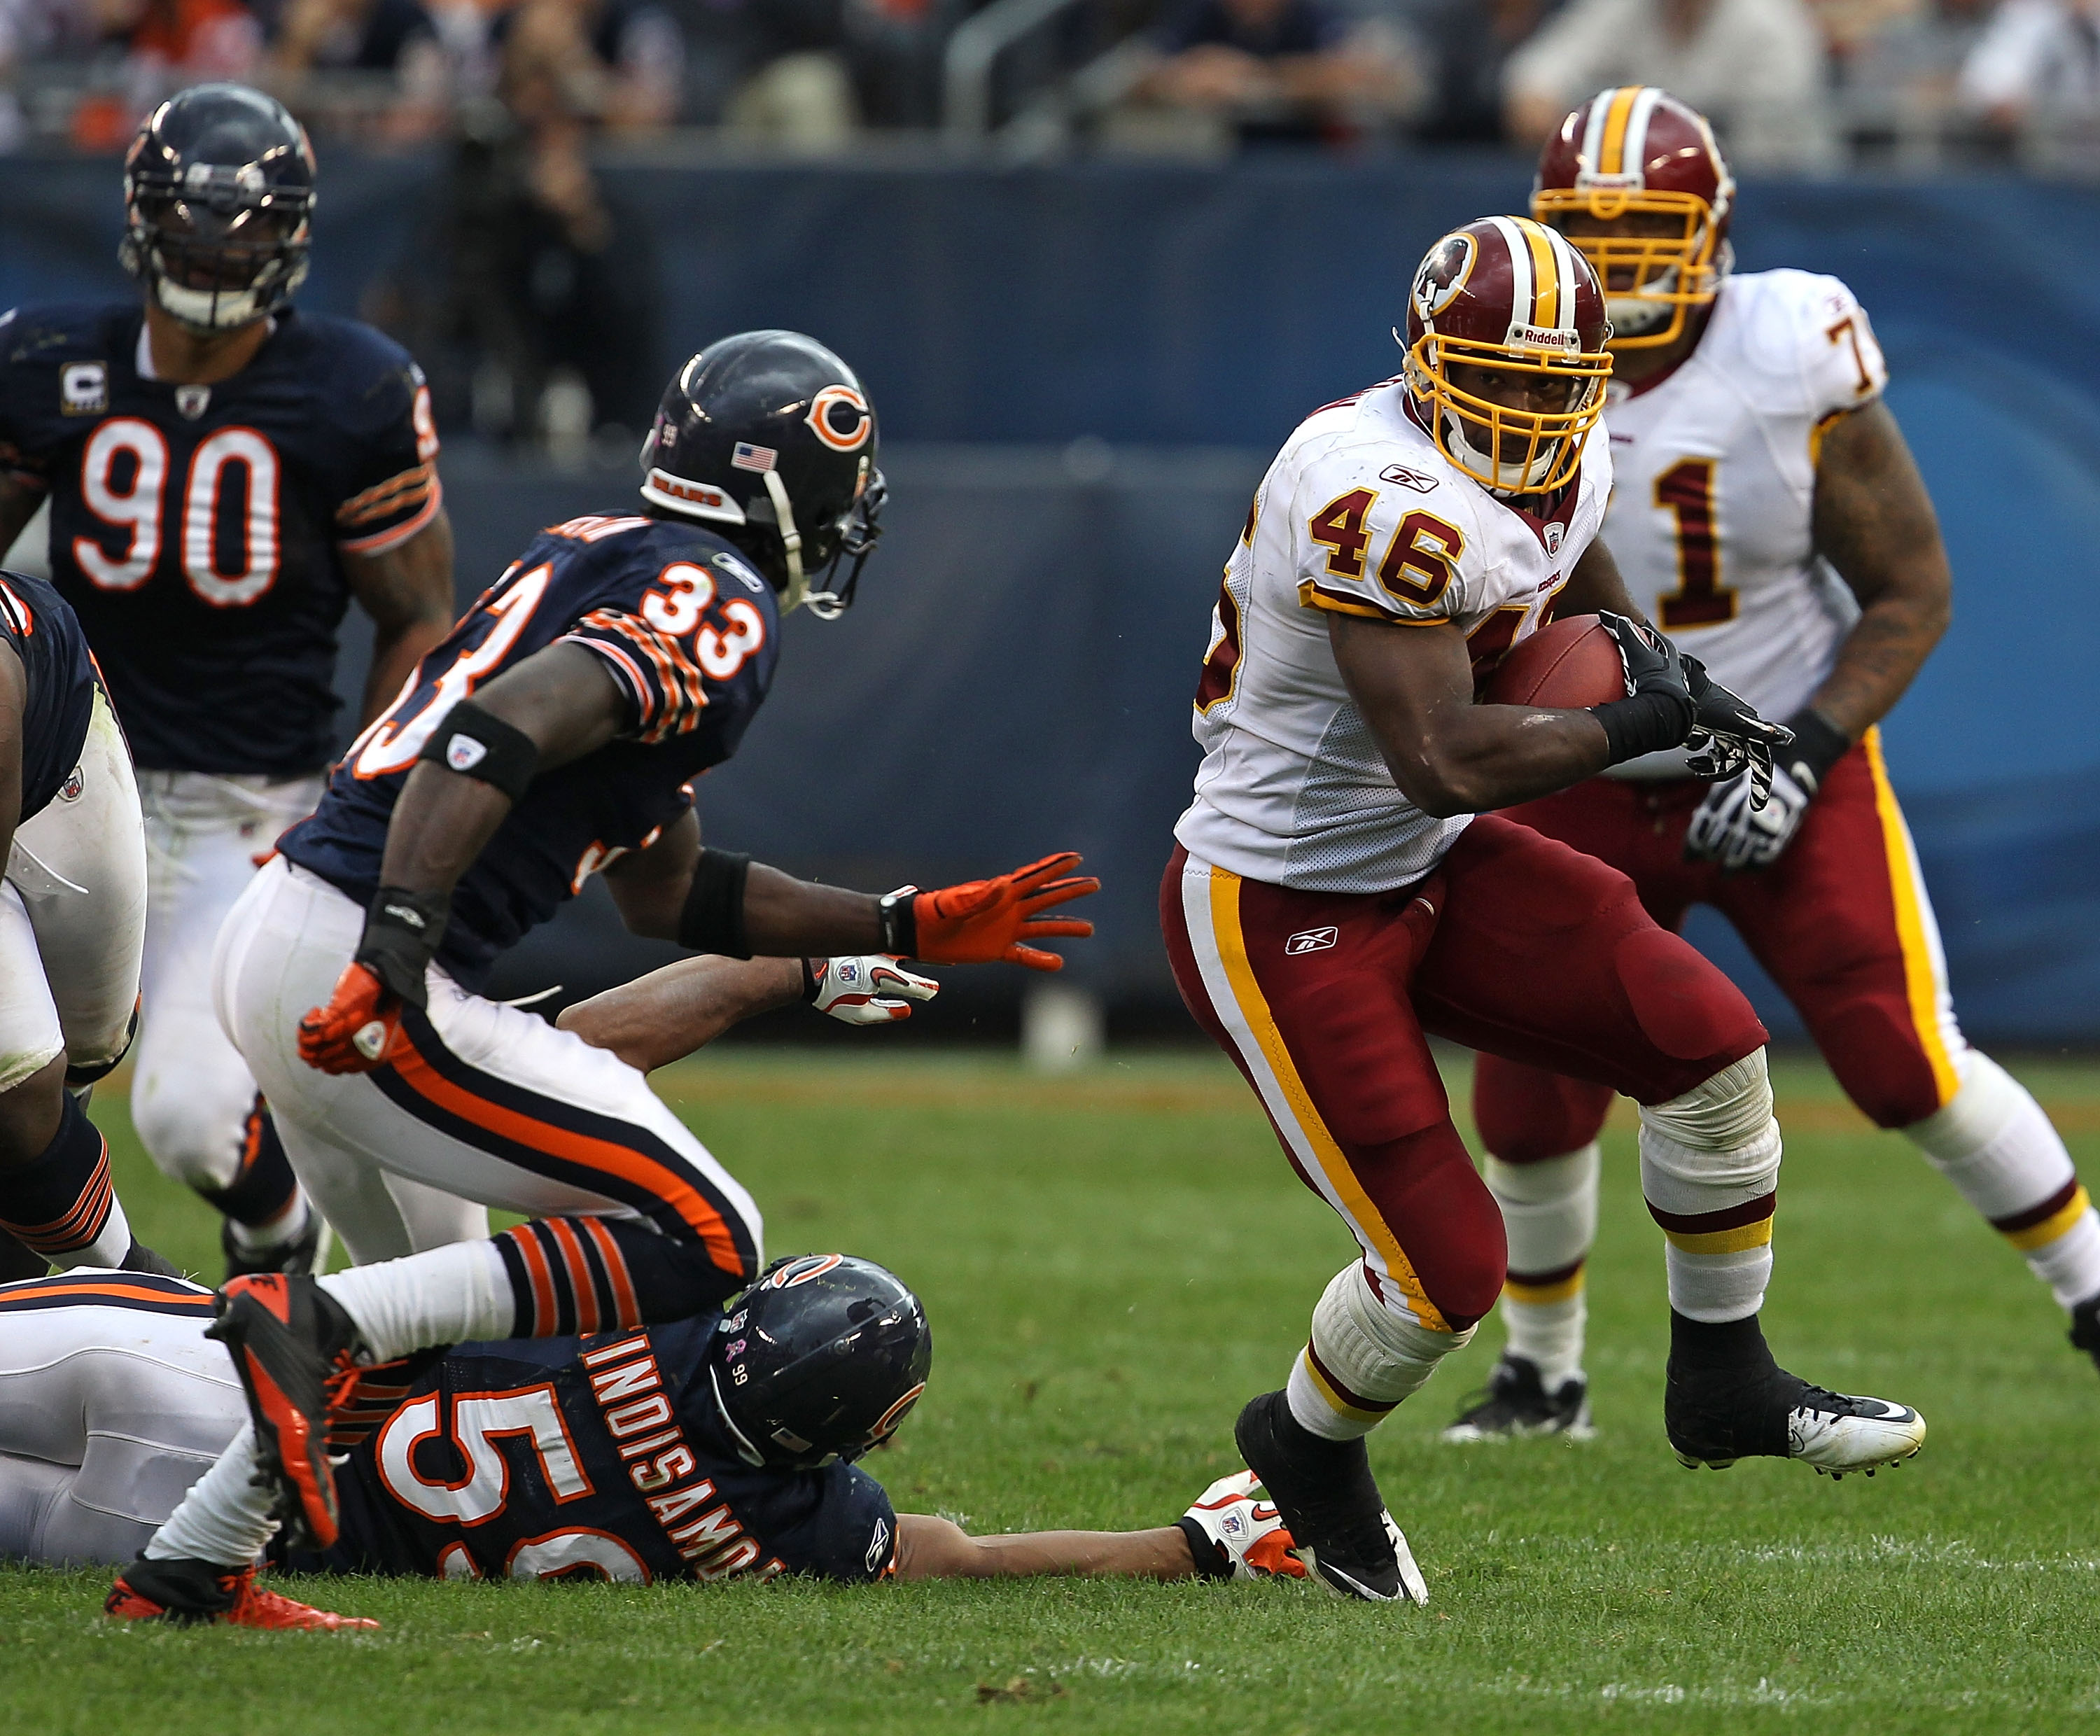 CHICAGO - OCTOBER 24: Ryan Torain #46 of the Washington Redskins runs past Pisa Tinoisamoa #59 of the Chicago Bears as Charles Tillman #33 closes in at Soldier Field on October 24, 2010 in Chicago, Illinois. The Redskins defeated the Bears 17-14. (Photo b